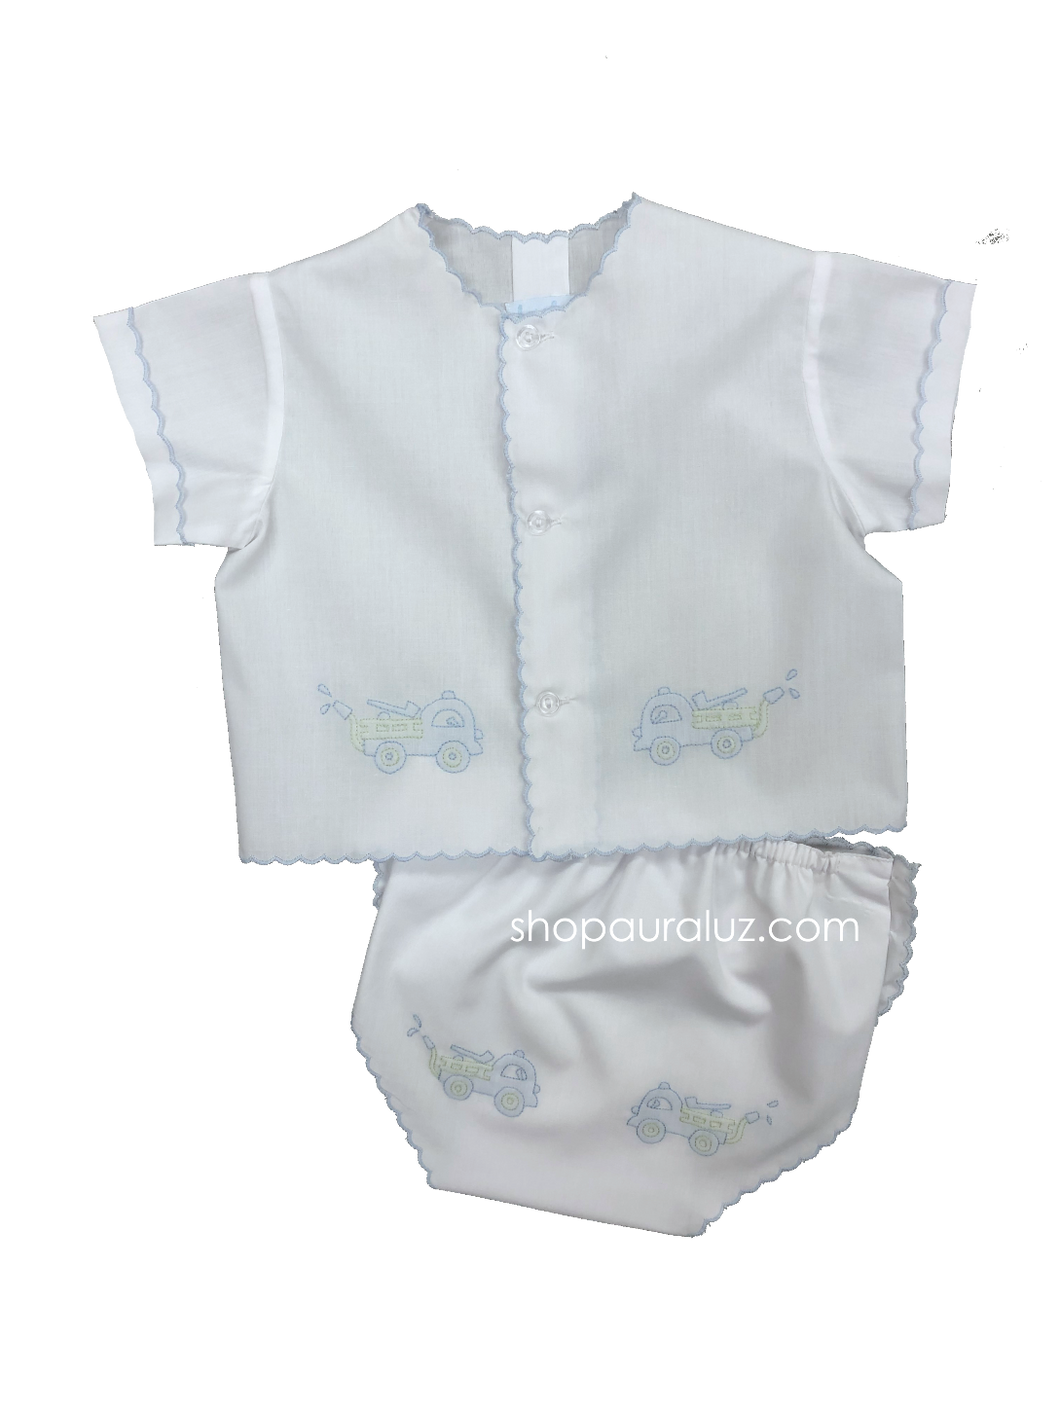 Auraluz Diaper shirt/cover set...White with blue scallops and embroidered fire trucks